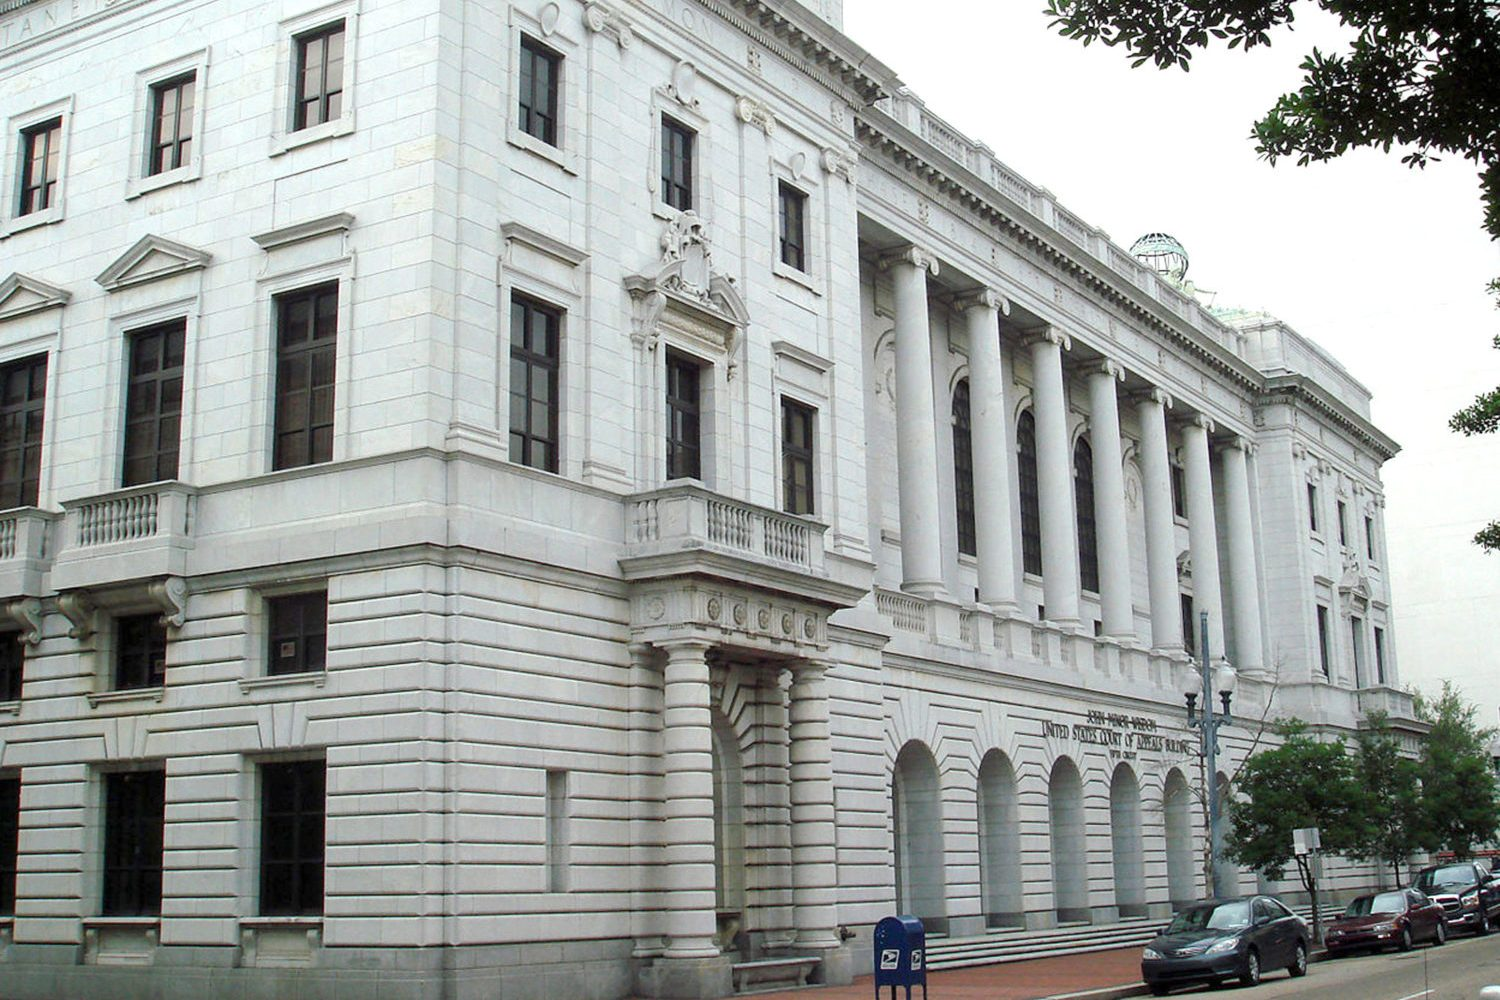 5th Circuit Court Building